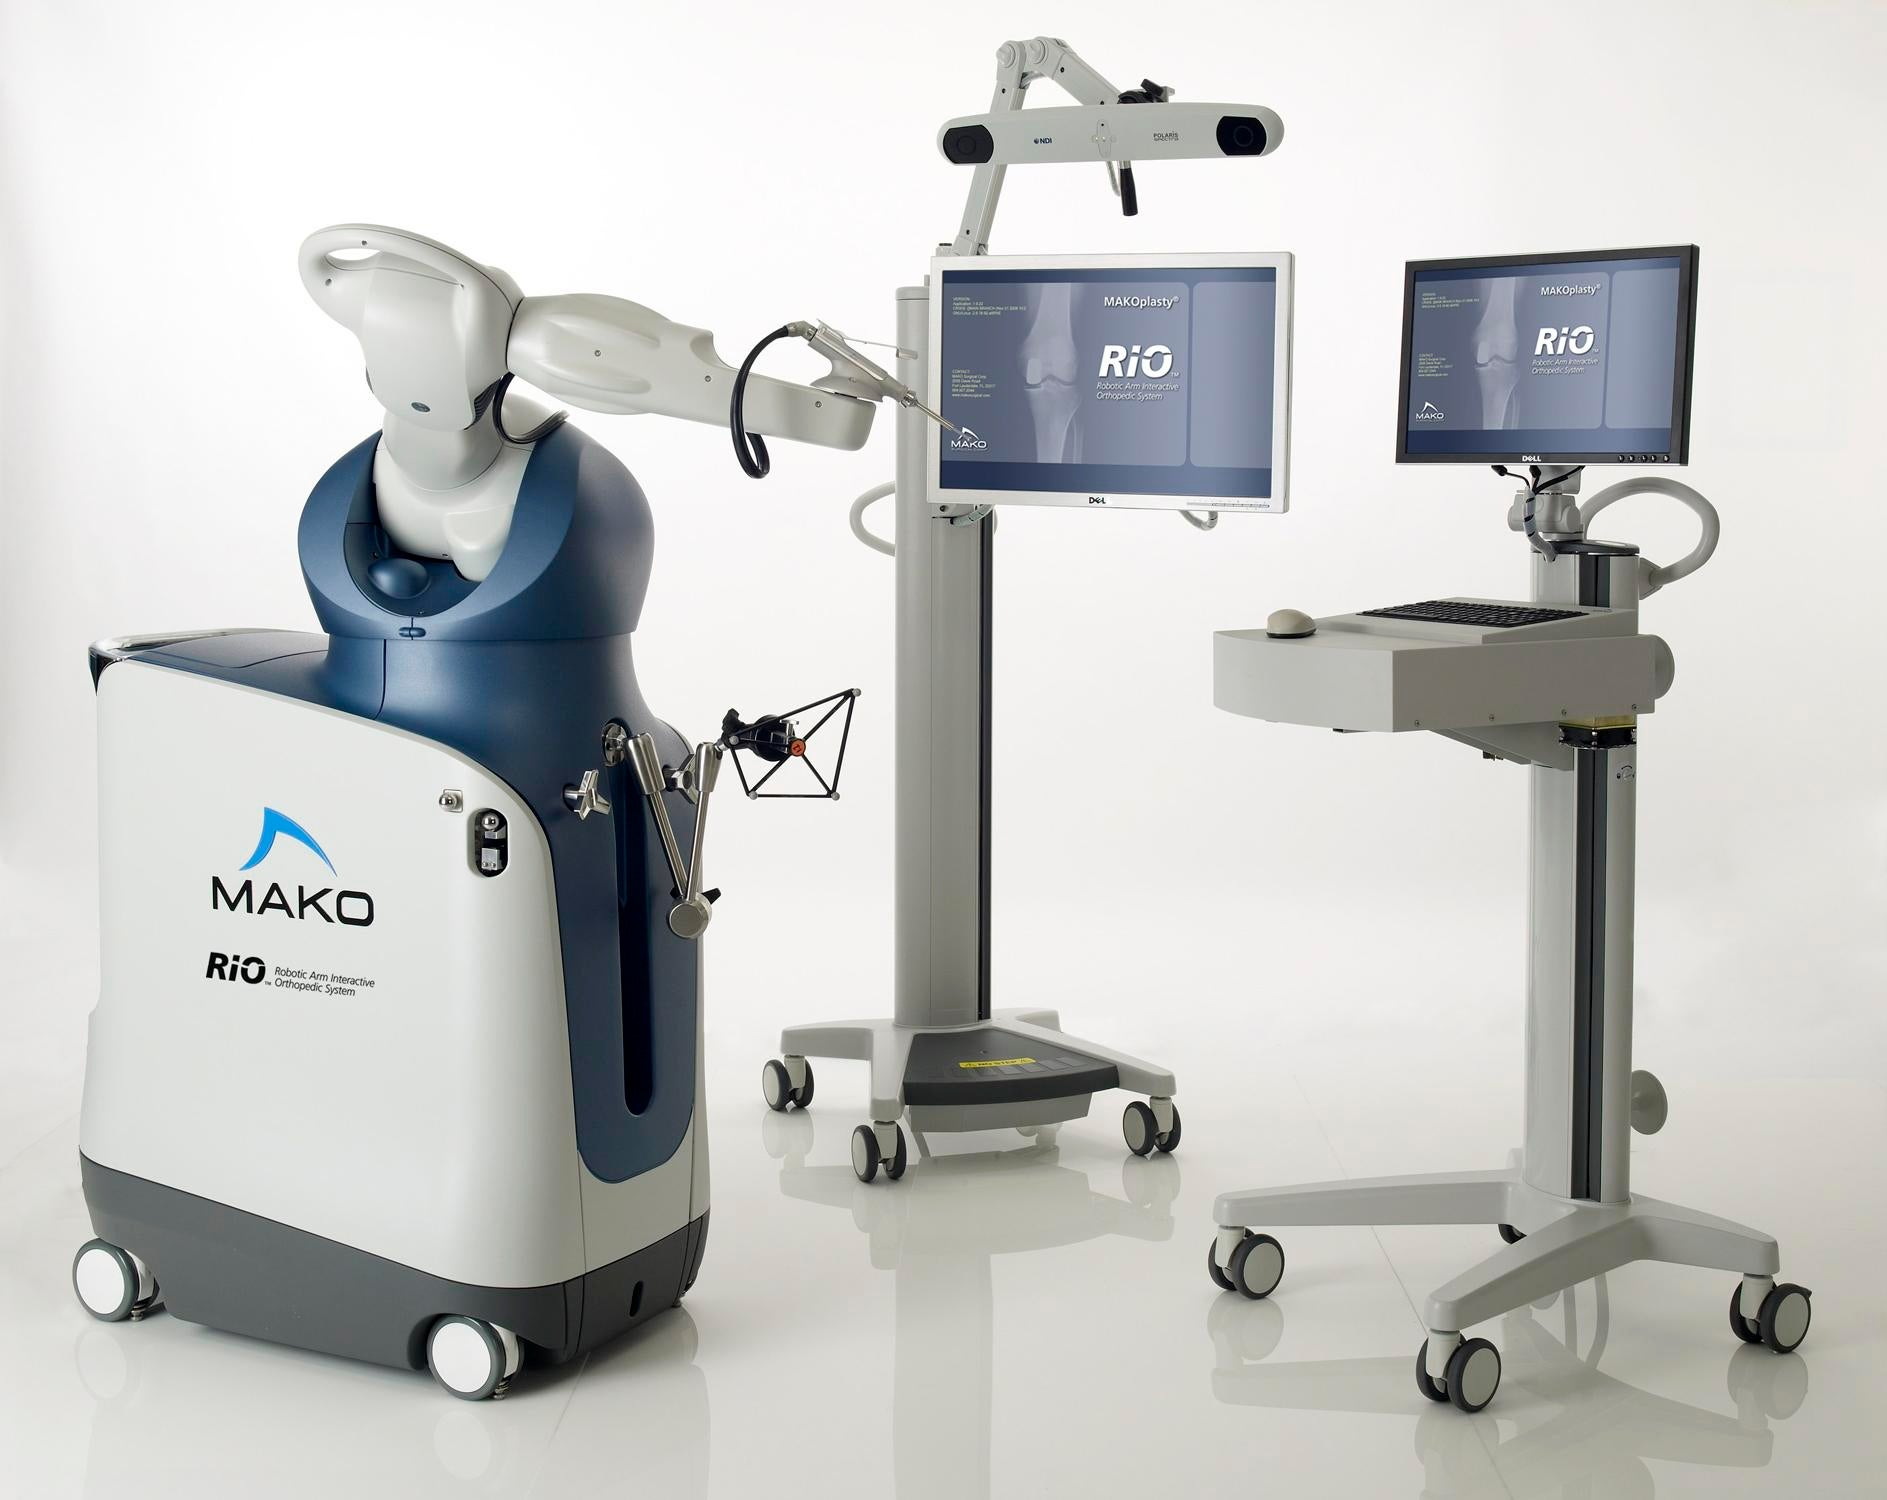 rio robotic surgery system